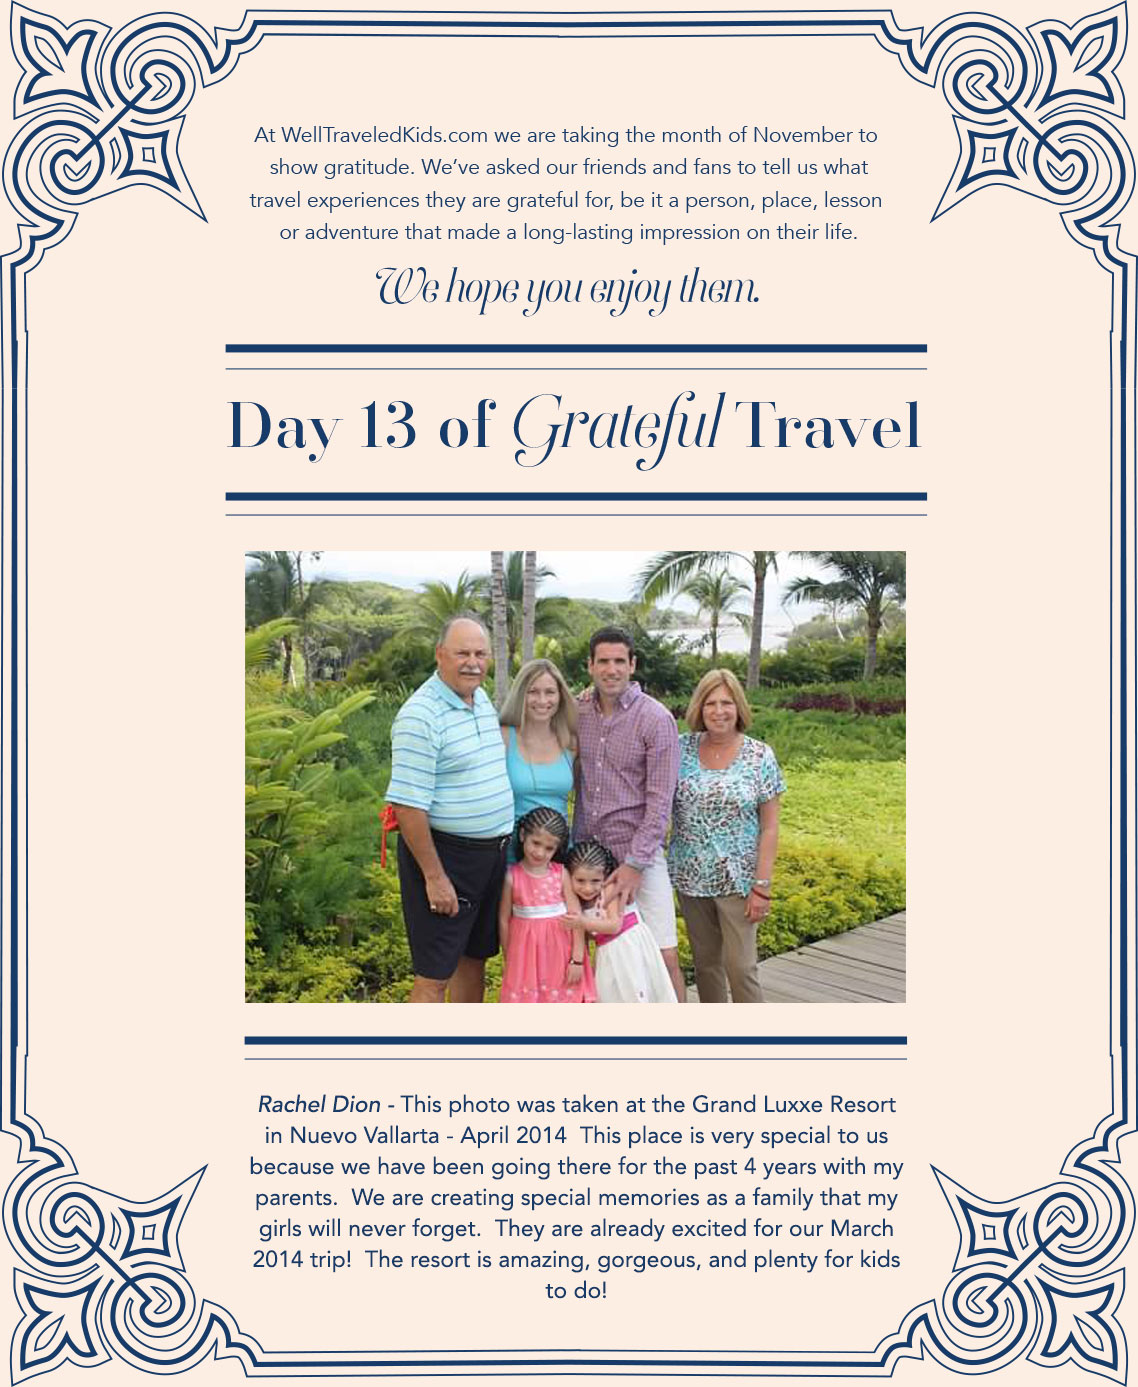 Day_13_GratefulTravel